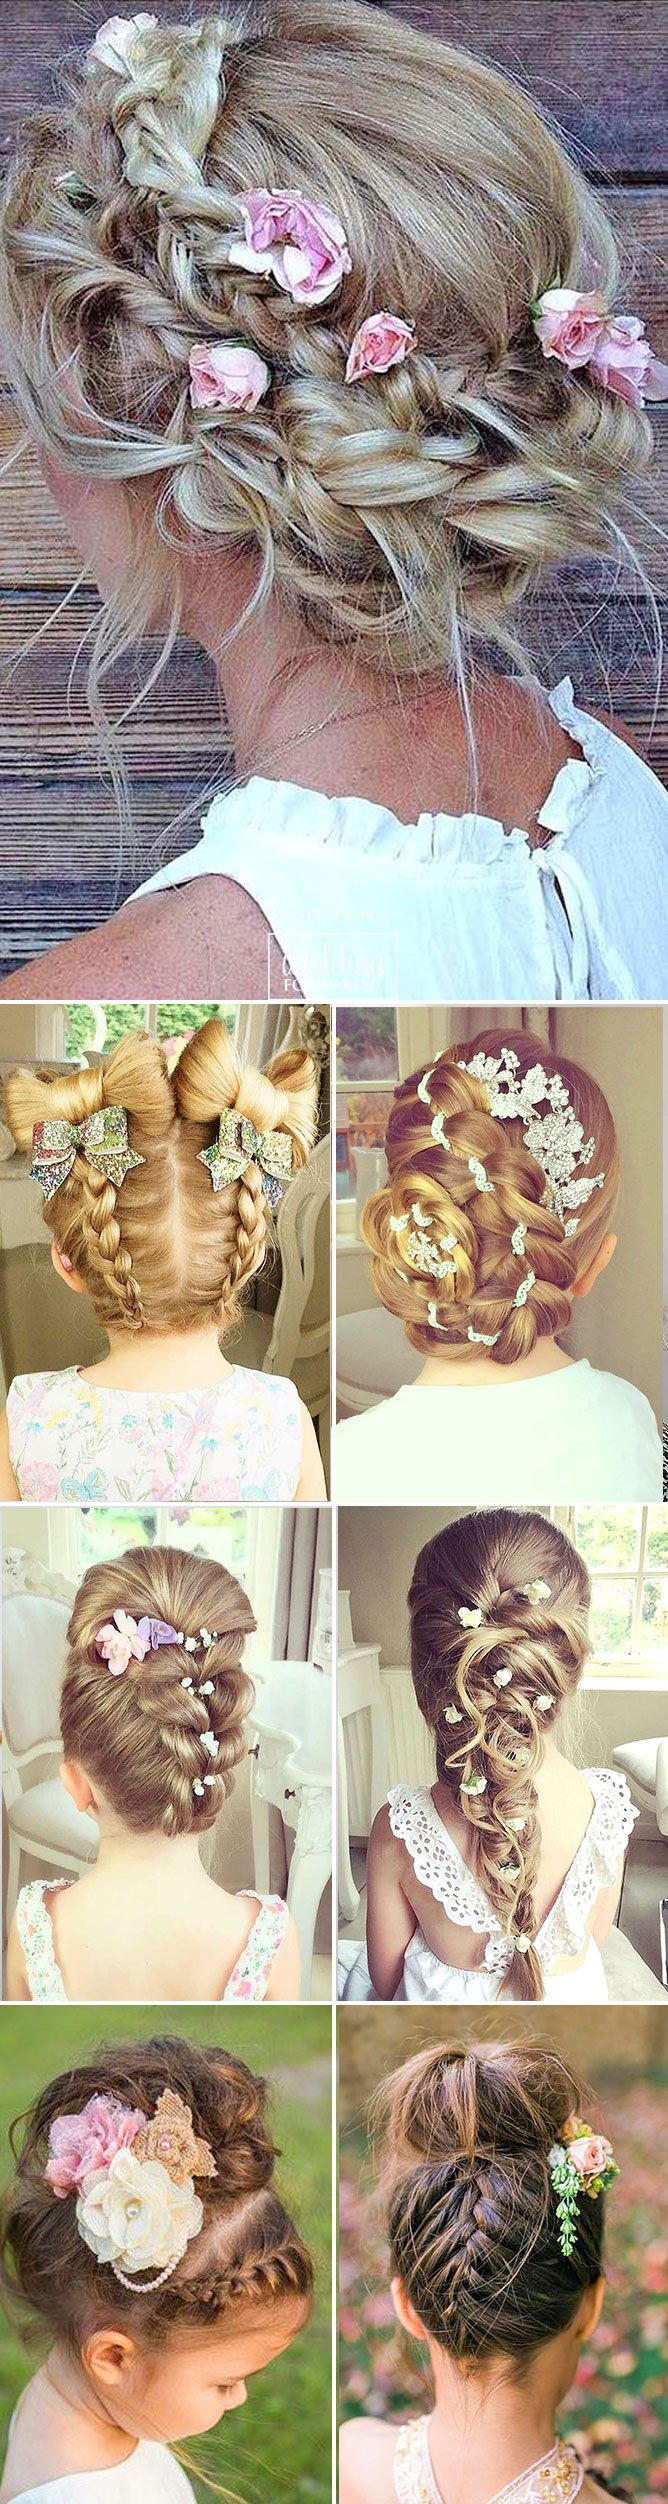 30 Cute Flower Girl Hairstyles ❤ It is necessary to find pretty hairstyle for your flower girl. Here you'll find simple flower girl hairstyles and more complex which made by a professional. See more:  http://www.weddingforward.com/flower-girl-hairstyles  #wedding  #hairstyle